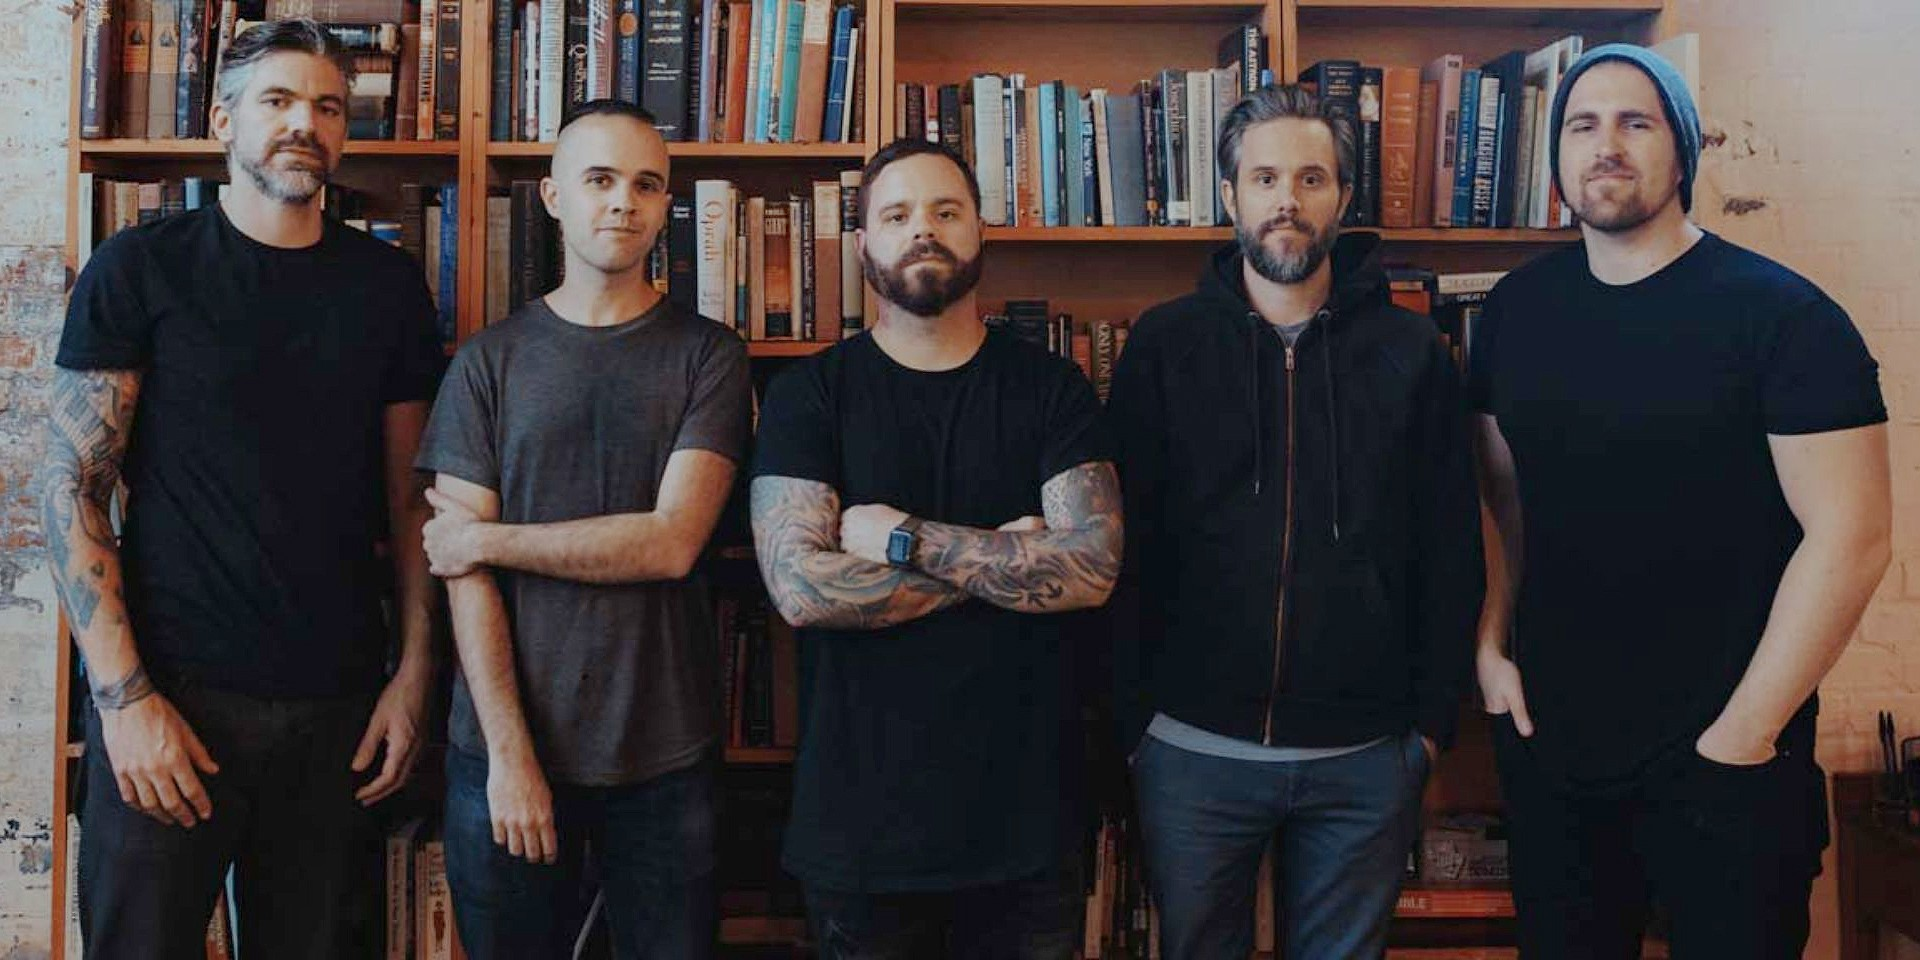 Between The Buried And Me team up with Mike Portnoy, Navene Koperweis, Ken Schalk for new single 'Fix the Error' from upcoming album Colors II – listen